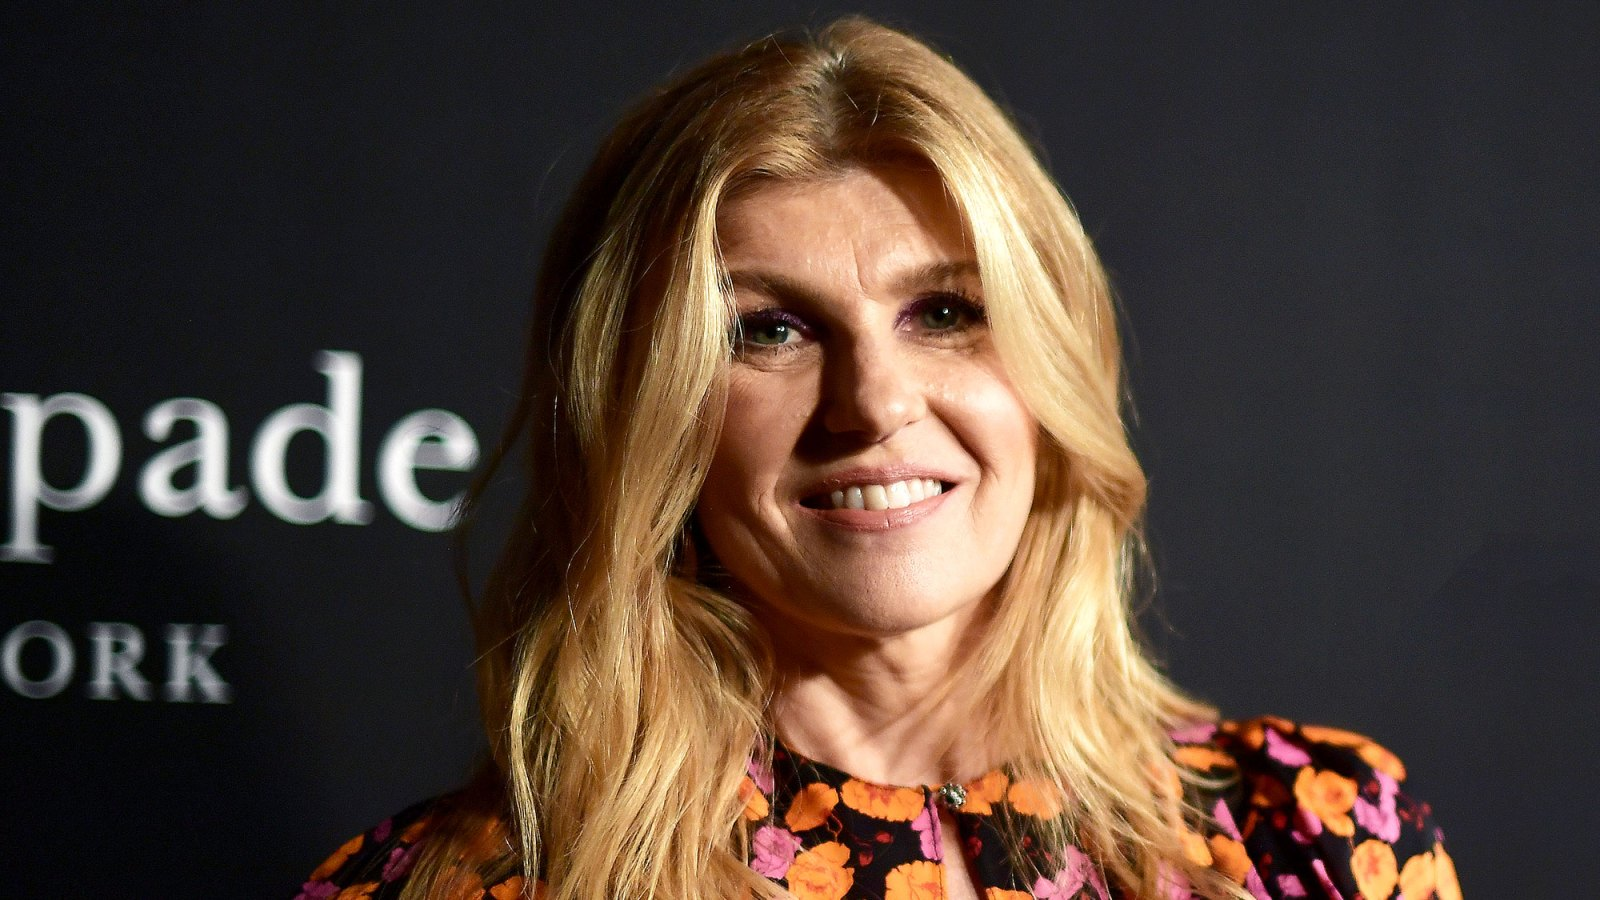 f40786ec5e45a Connie Britton, 51, Stuns in a Minidress — Find Out How She Gets Those Legs!